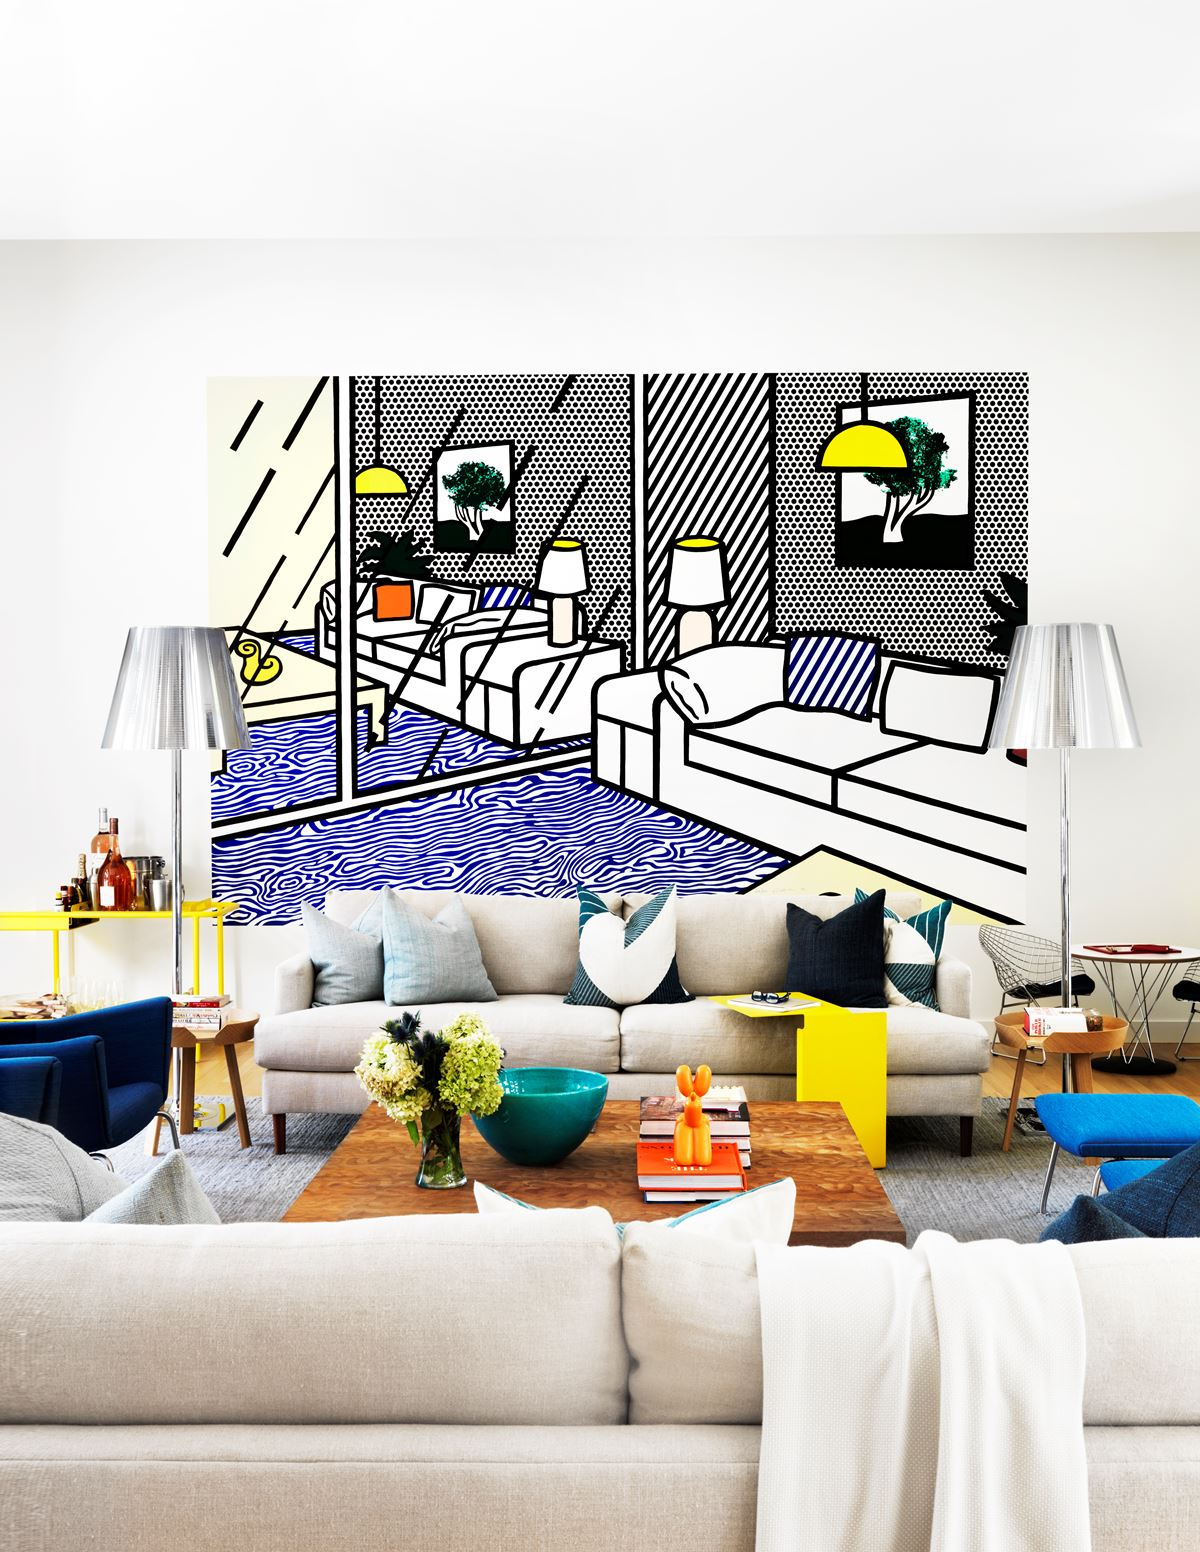 6 ways to light up your living room homes 28 images 6 - Creative lamp designs to brighten up your living space ...